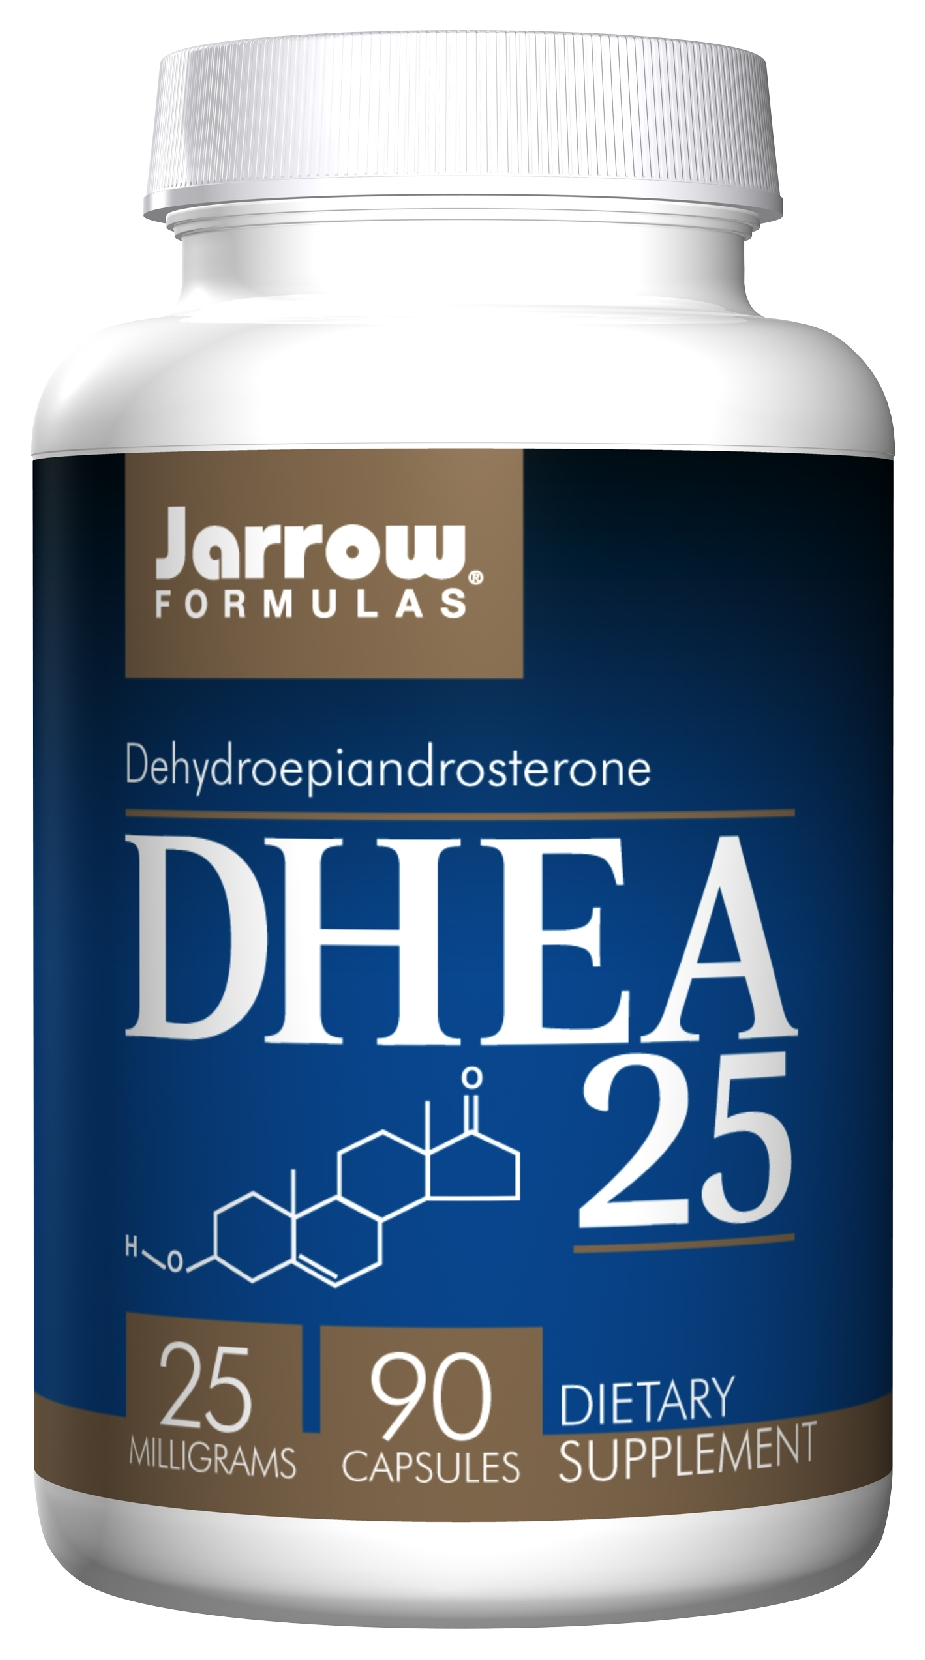 DHEA 25 25 mg 90 caps by Jarrow Formulas